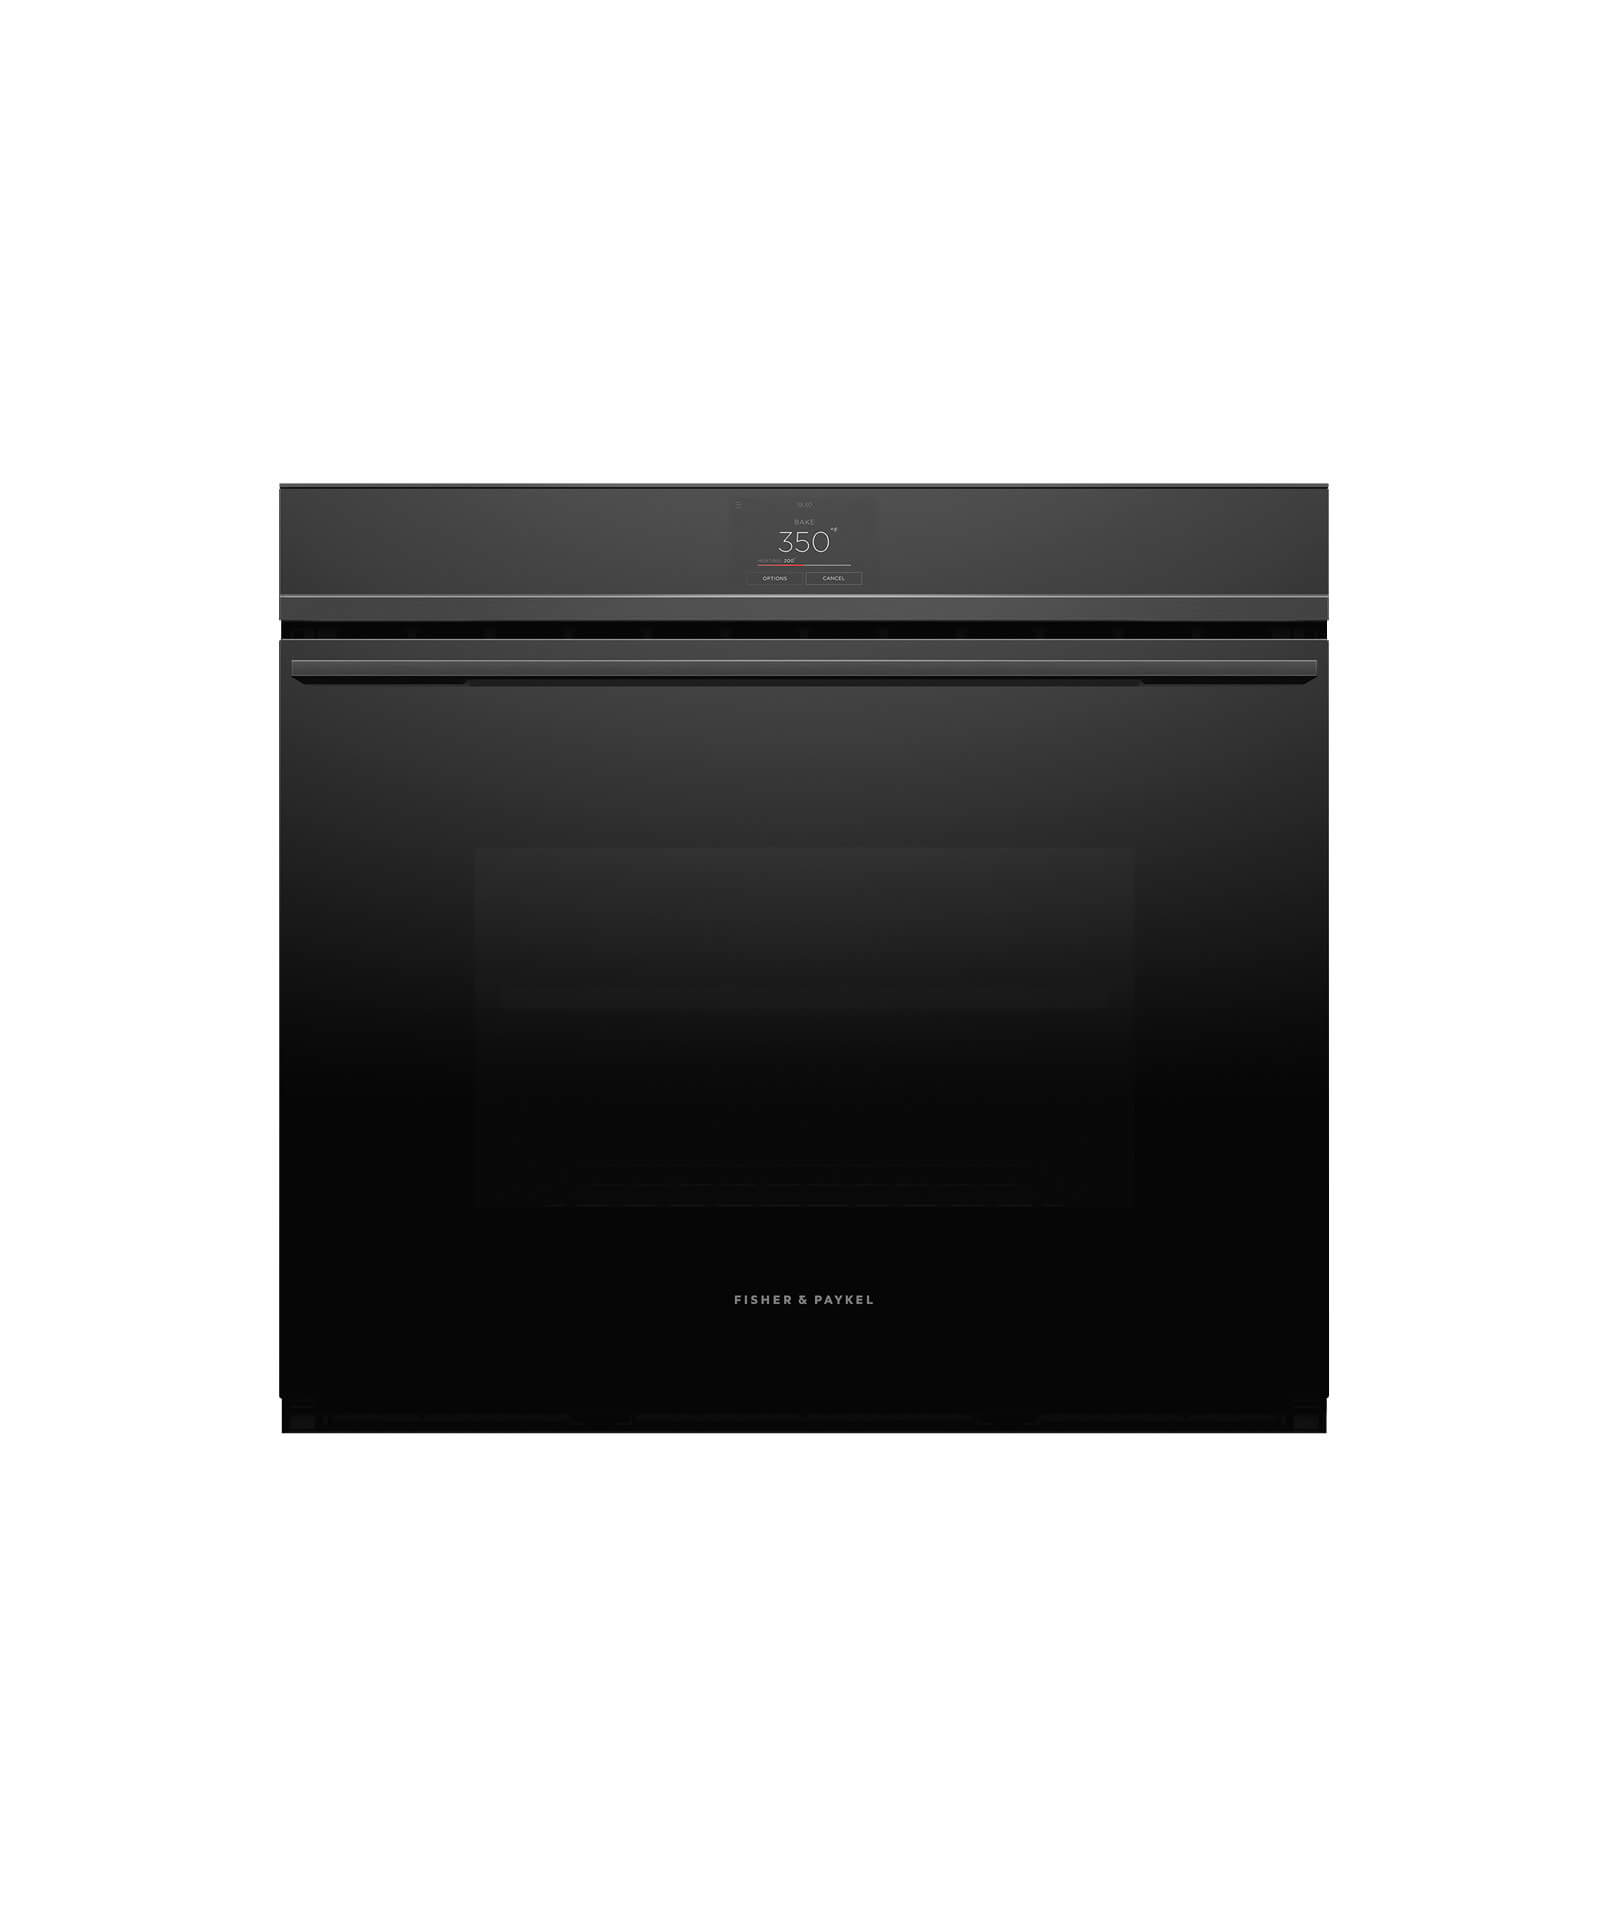 """Fisher and Paykel Built-in Oven, 30"""", 4.1 cu ft, 17 Function, Self-cleaning"""